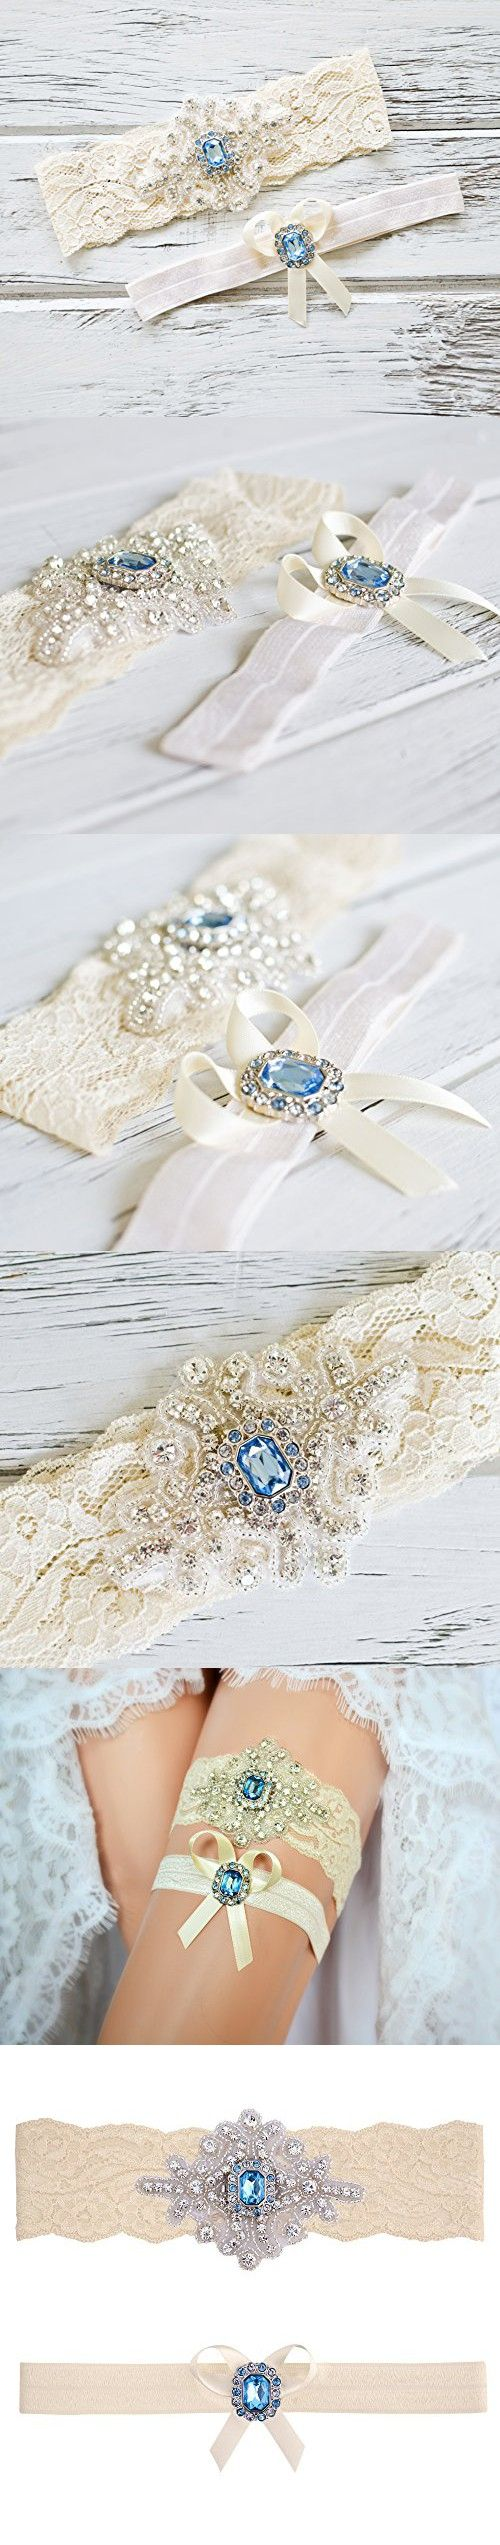 "Blue Topaz Wedding Bridal Garter Set (Large (20"" - 21""), Ivory Lace)"